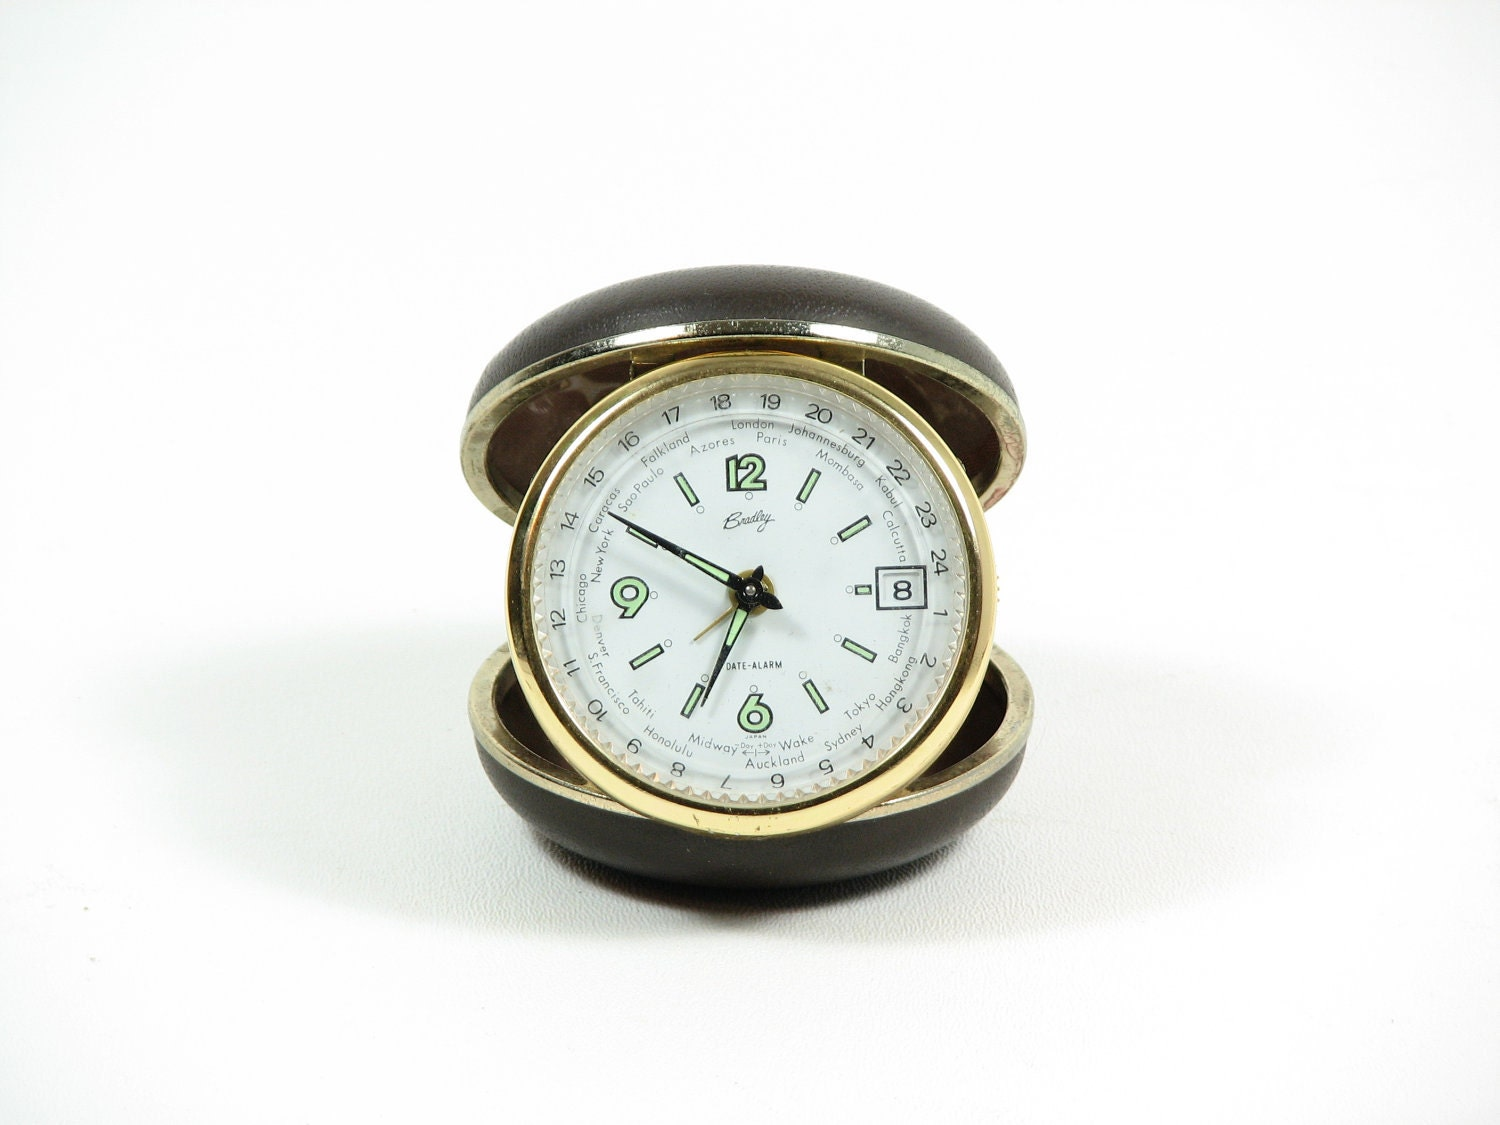 Vintage Travel Alarm Clock Bradley Small Clock World Time Gift